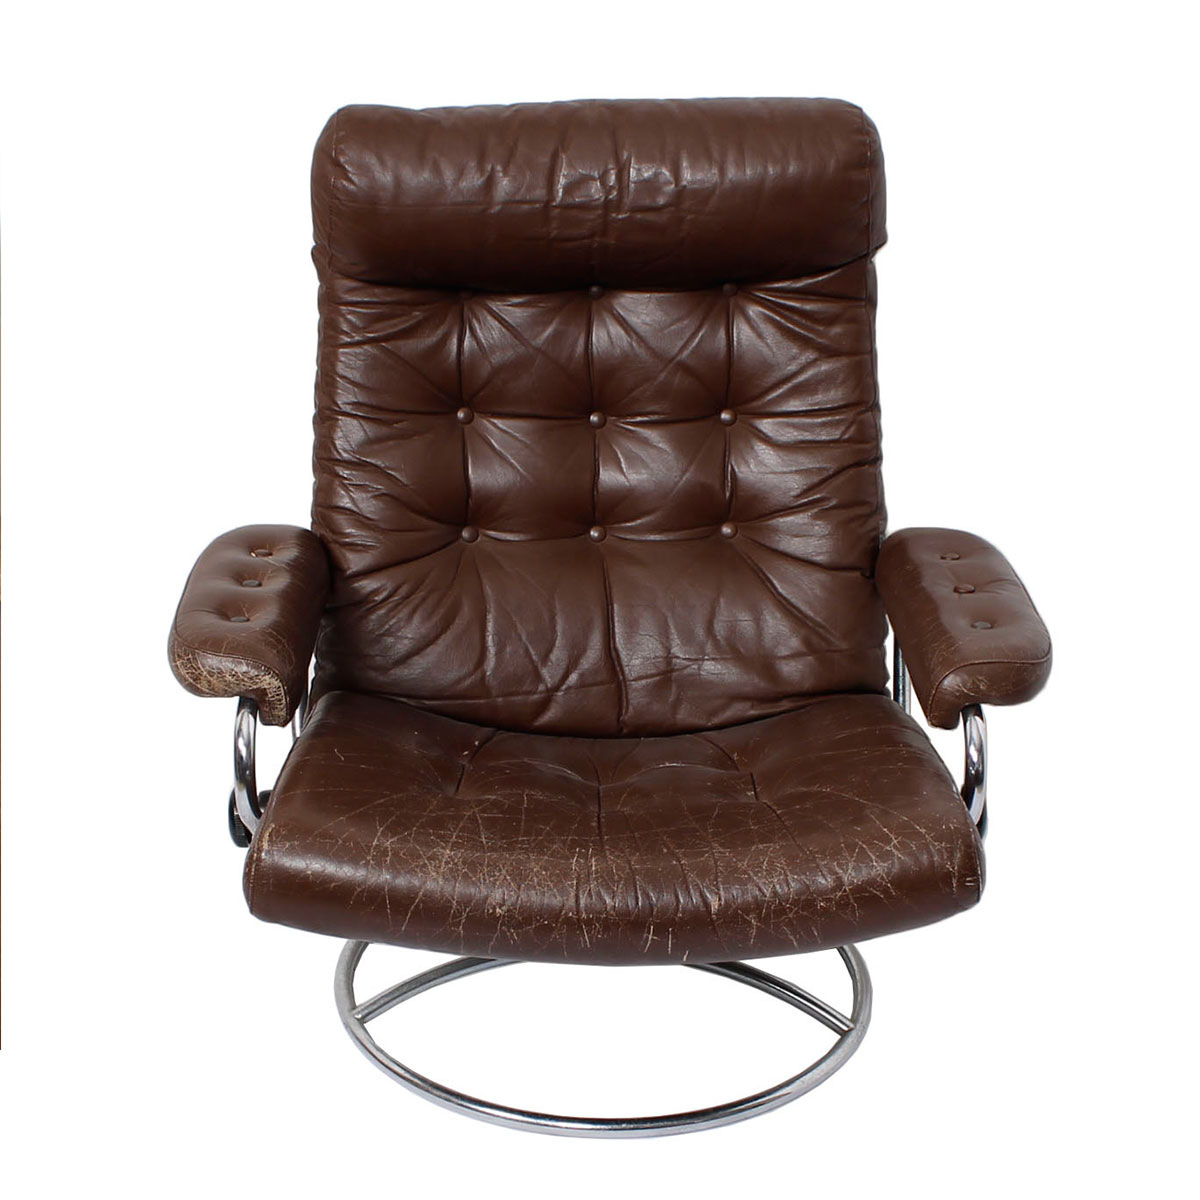 Ekornes Stressless Norwegian Brown Leather Recliner w/ Ottoman